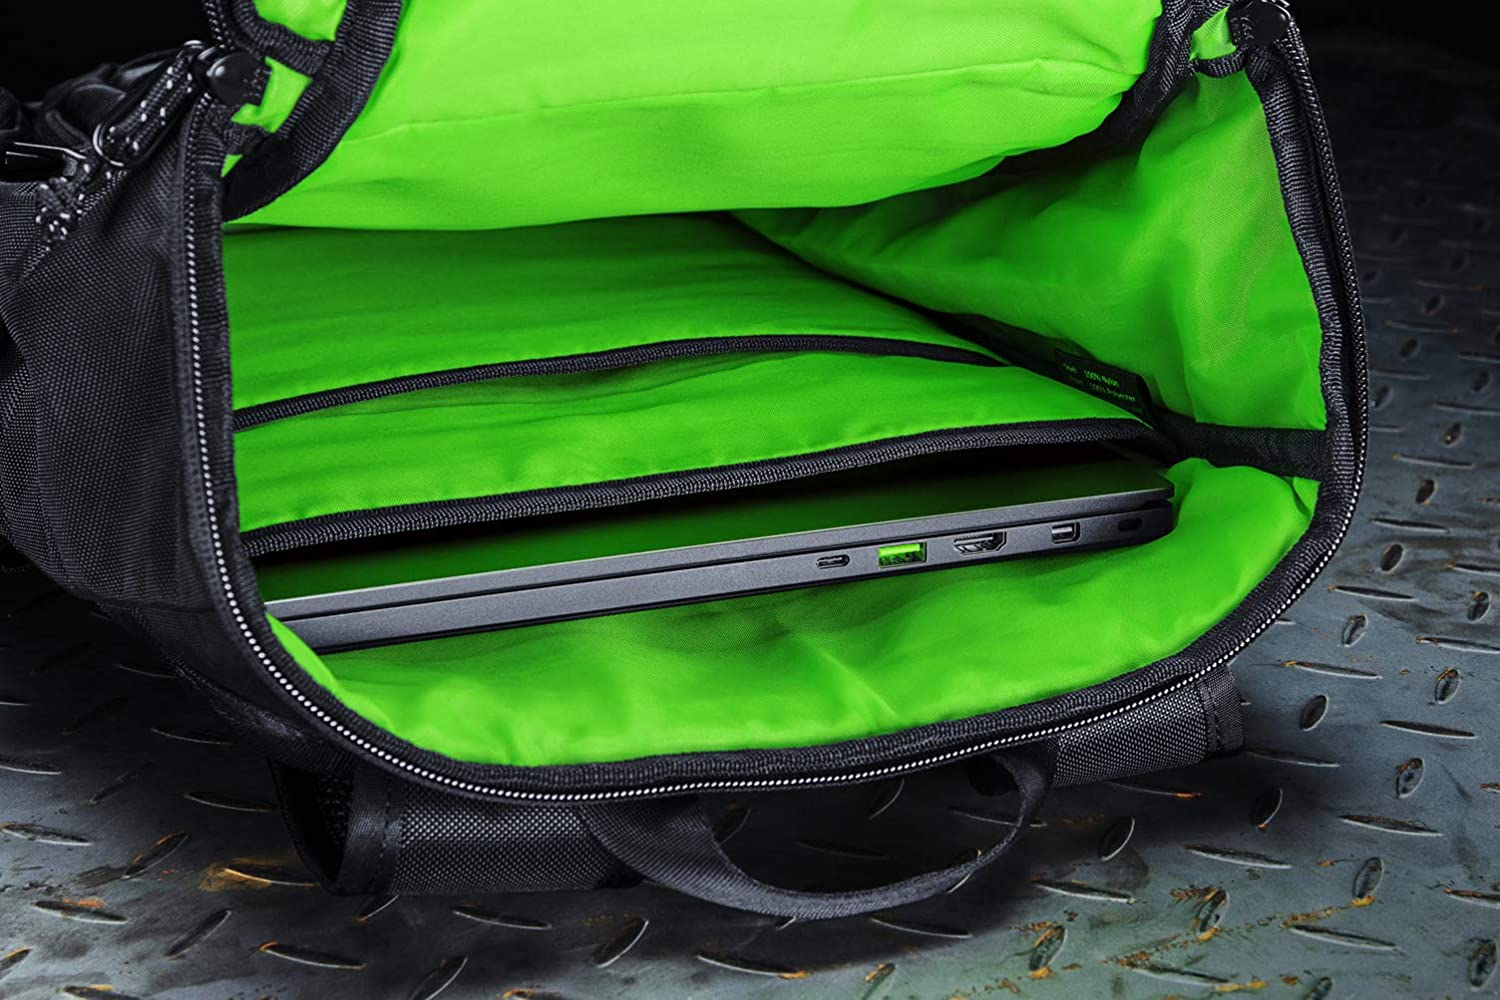 Black Fits 15 inch Laptops Roll Top for Increased Capacity Razer Tactical v2 17 Laptop Backpack: Tear /& Water Resistant Exterior Scratch-Proof Interior